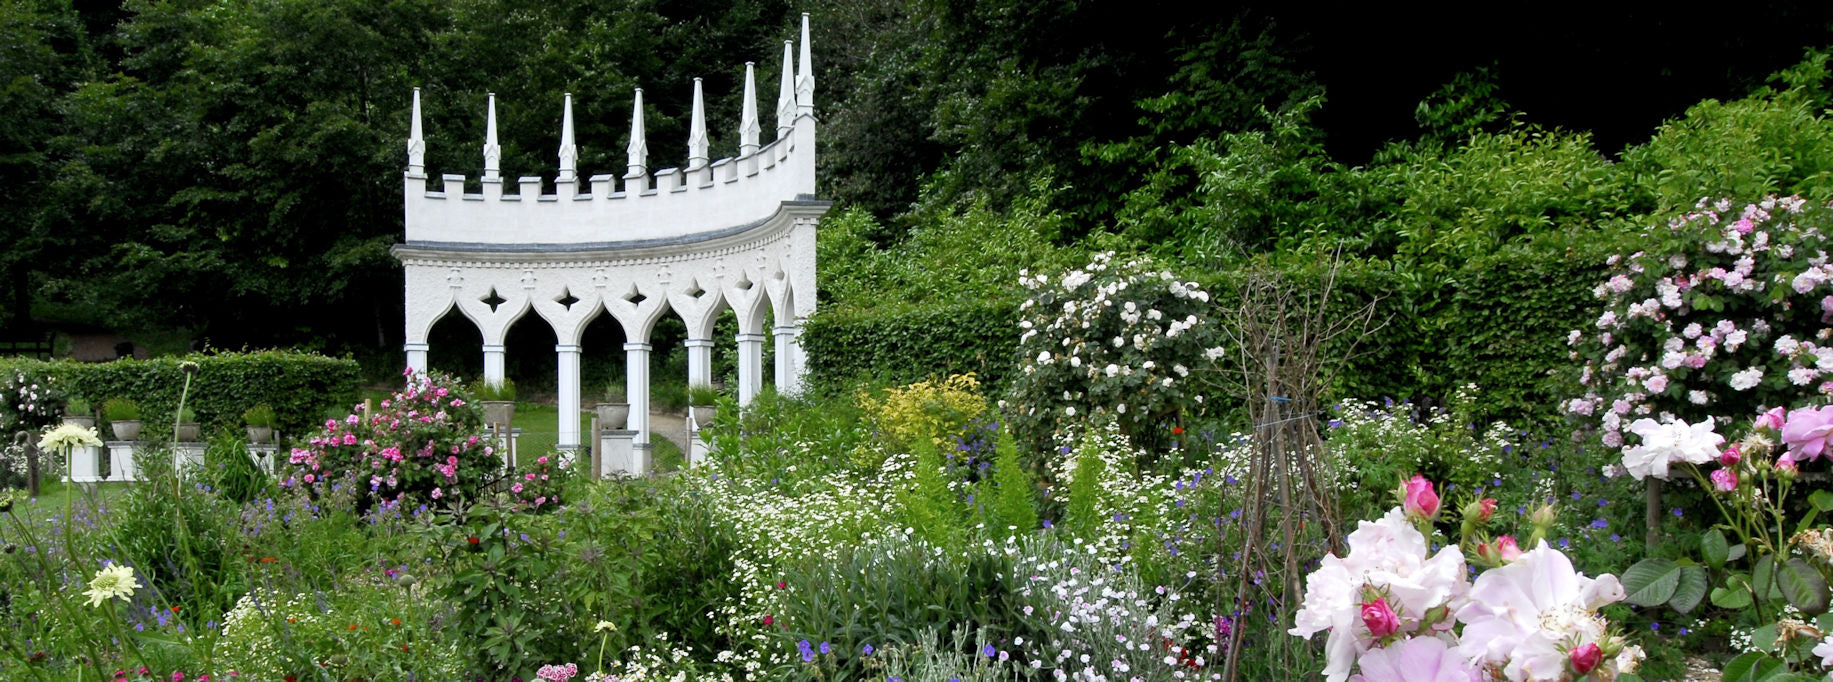 rococo-garden-painswick-places-to-visit-wedding-venue